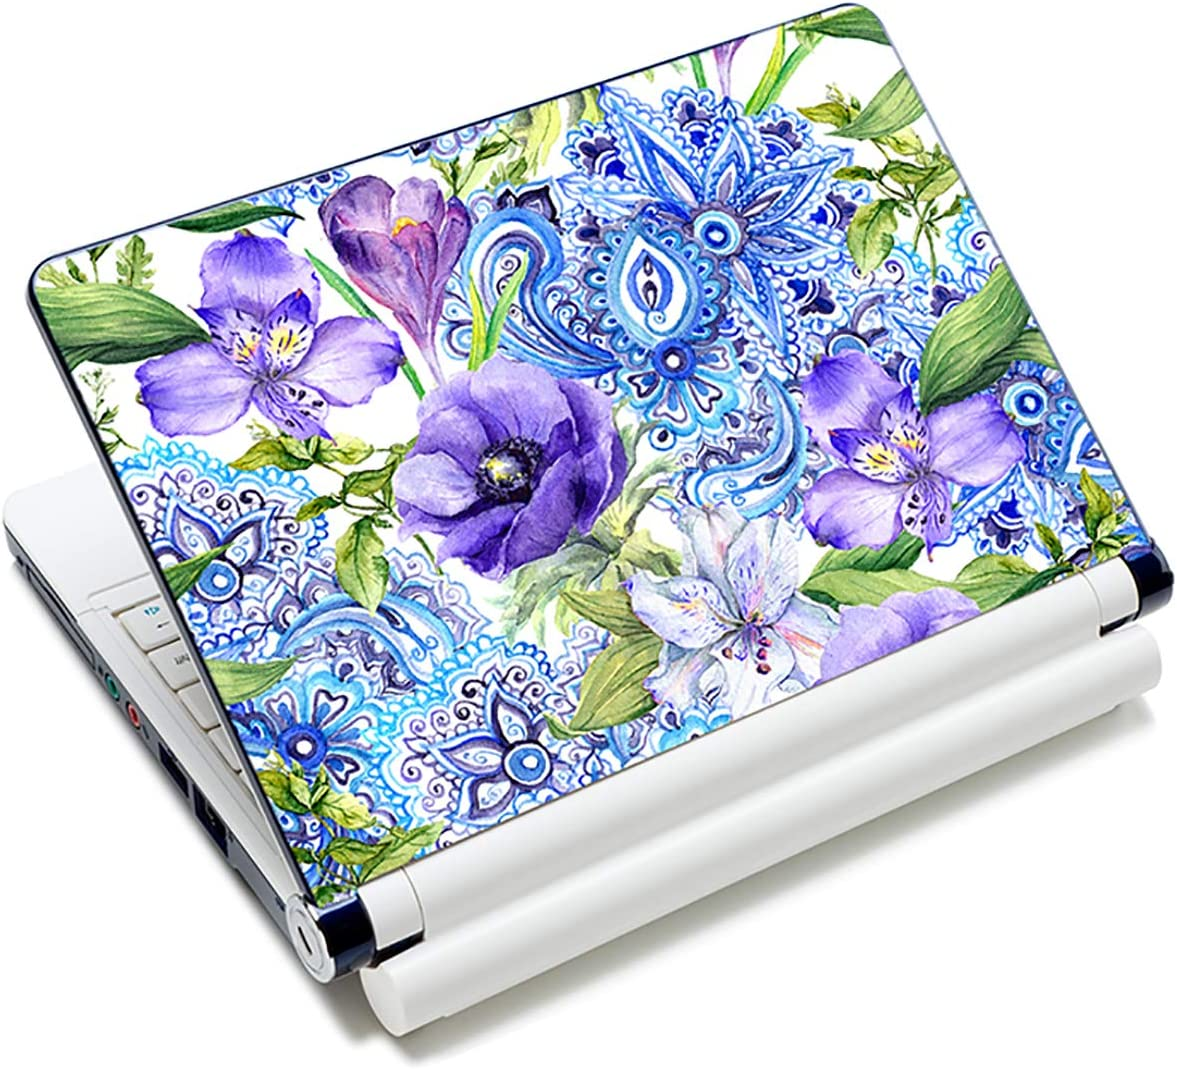 Laptop Stickers Decal,12 13 14 15 15.6 inches Netbook Laptop Skin Sticker Reusable Protector Cover Case for Toshiba Hp Samsung Dell Apple Acer Leonovo Sony Asus Laptop Notebook (Purple Flowers)